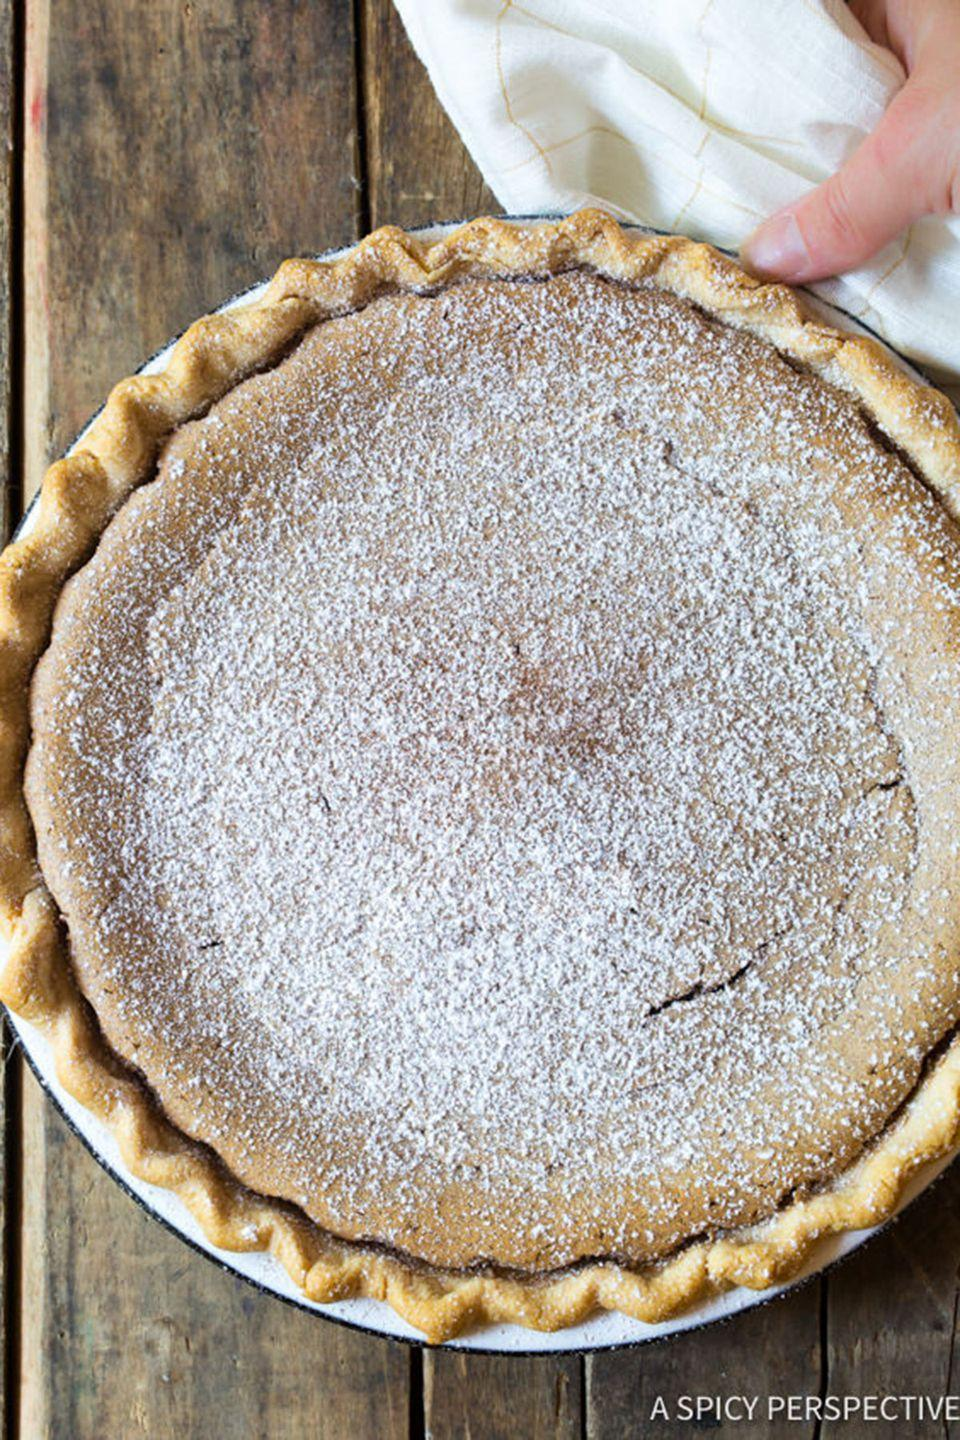 """<p>In the fall, you can never have too much cinnamon. Top with a dusting of powdered sugar, and it'll look as pretty as it is tasty.</p><p><strong>Get the recipe at <a href=""""http://www.aspicyperspective.com/cinnamon-pie/"""" rel=""""nofollow noopener"""" target=""""_blank"""" data-ylk=""""slk:A Spicy Perspective"""" class=""""link rapid-noclick-resp"""">A Spicy Perspective</a>.</strong> </p>"""